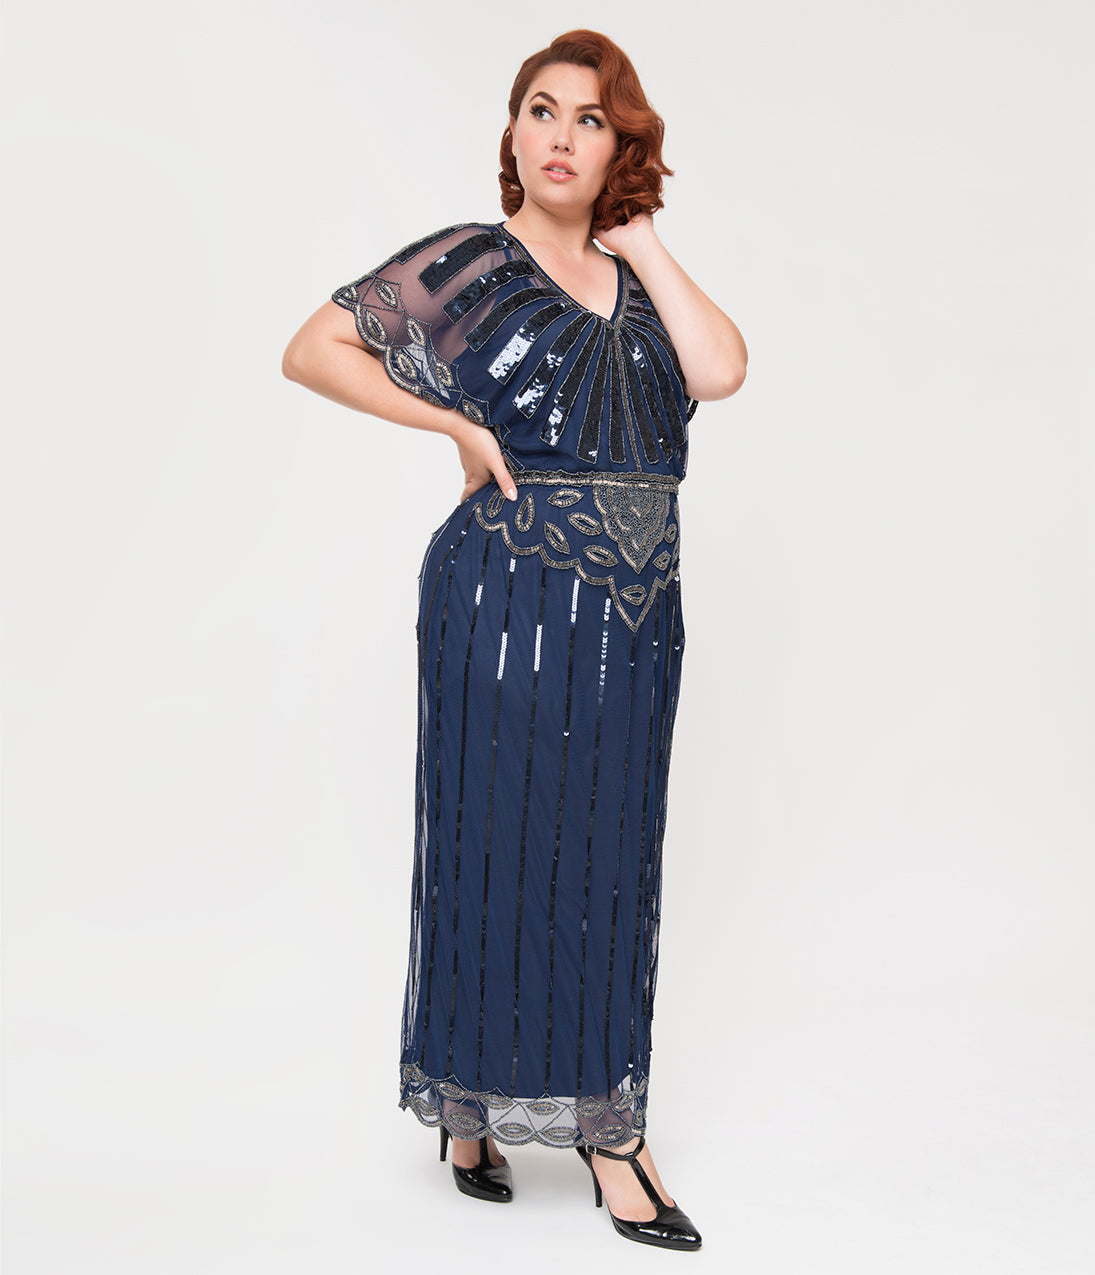 Edwardian Evening Gowns | Victorian Evening Dresses Plus Size 1920S Navy Blue Beaded Deco Angelina Maxi Flapper Dress $168.00 AT vintagedancer.com